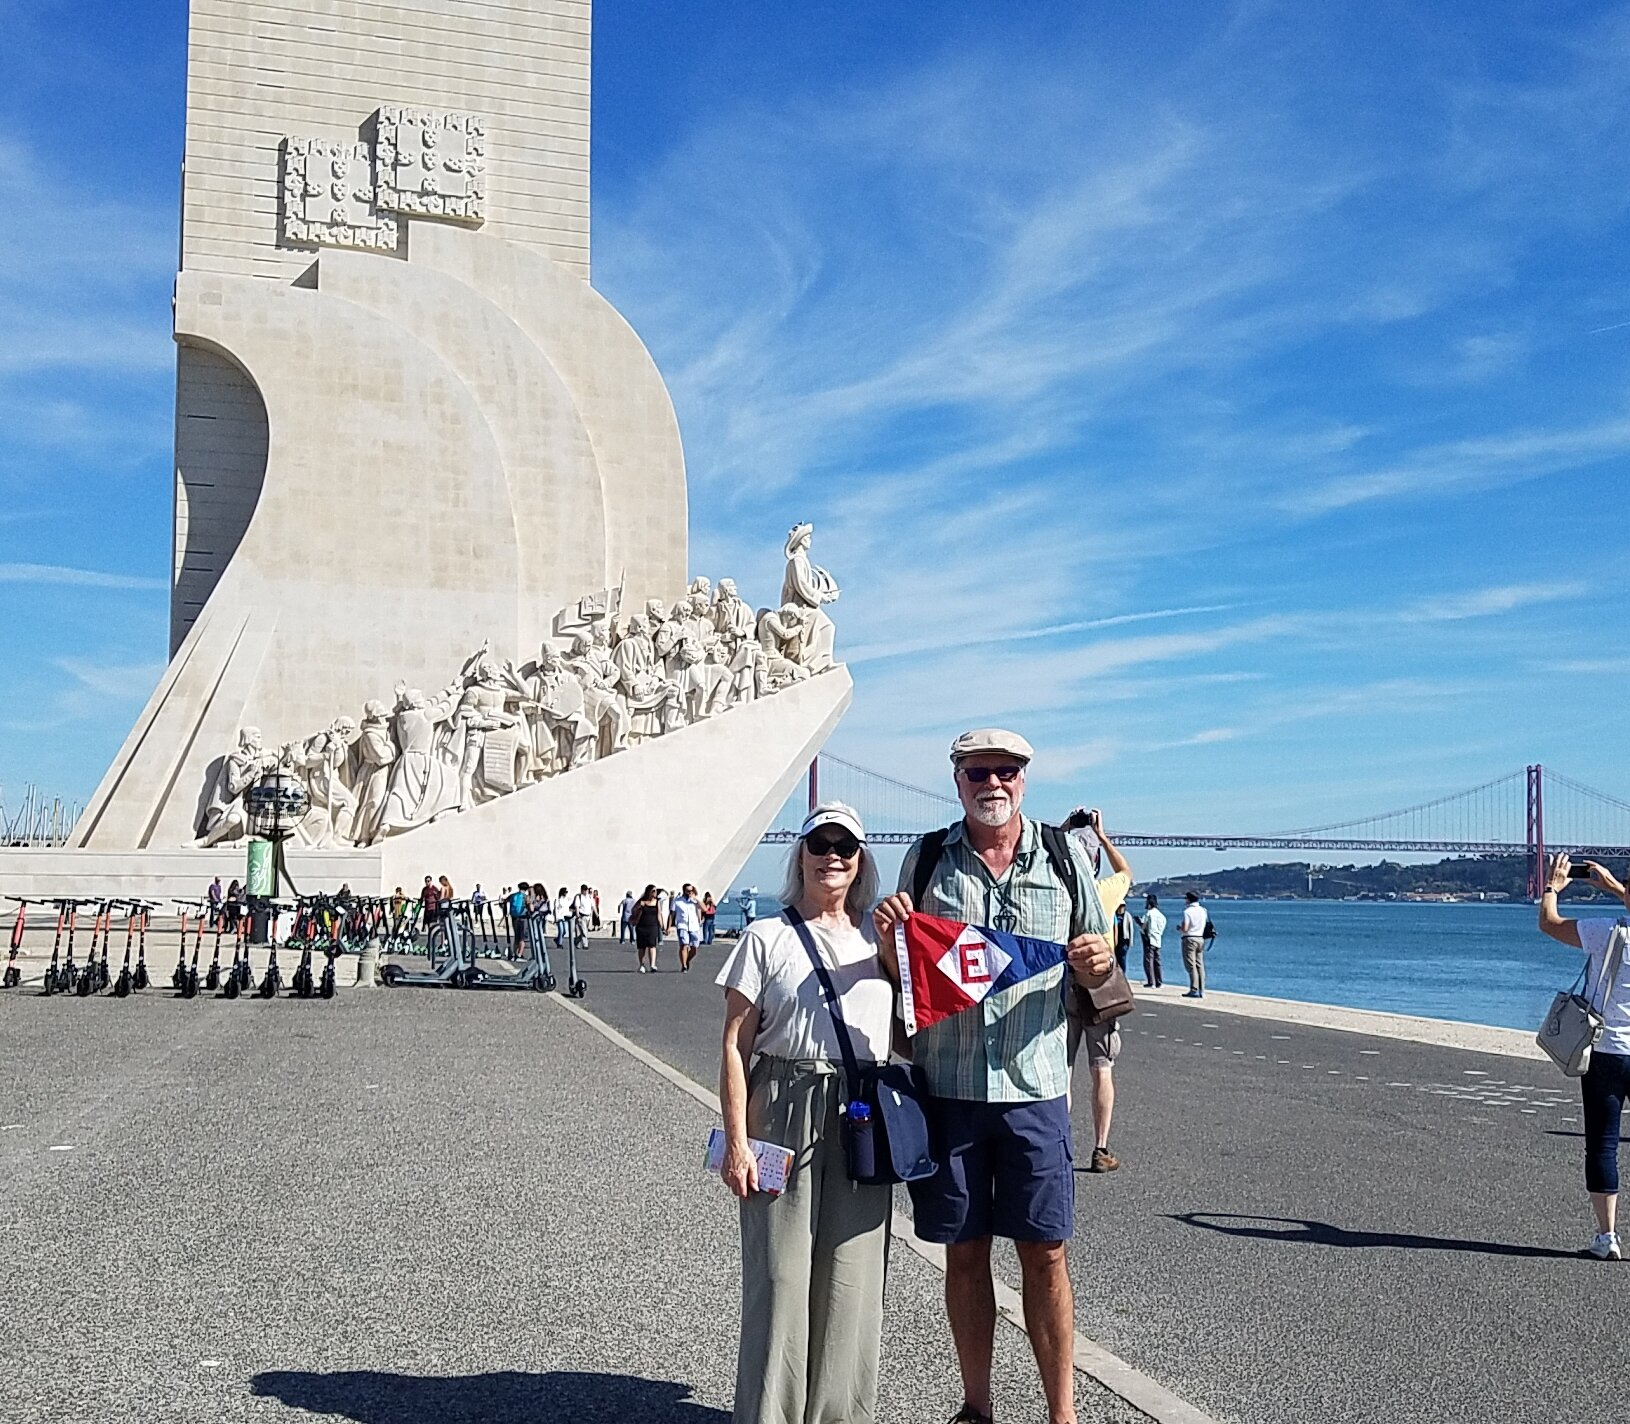 Linda and Murray show the colors in front of the Vasco de Gama Memorial in Lisbon, Portugal